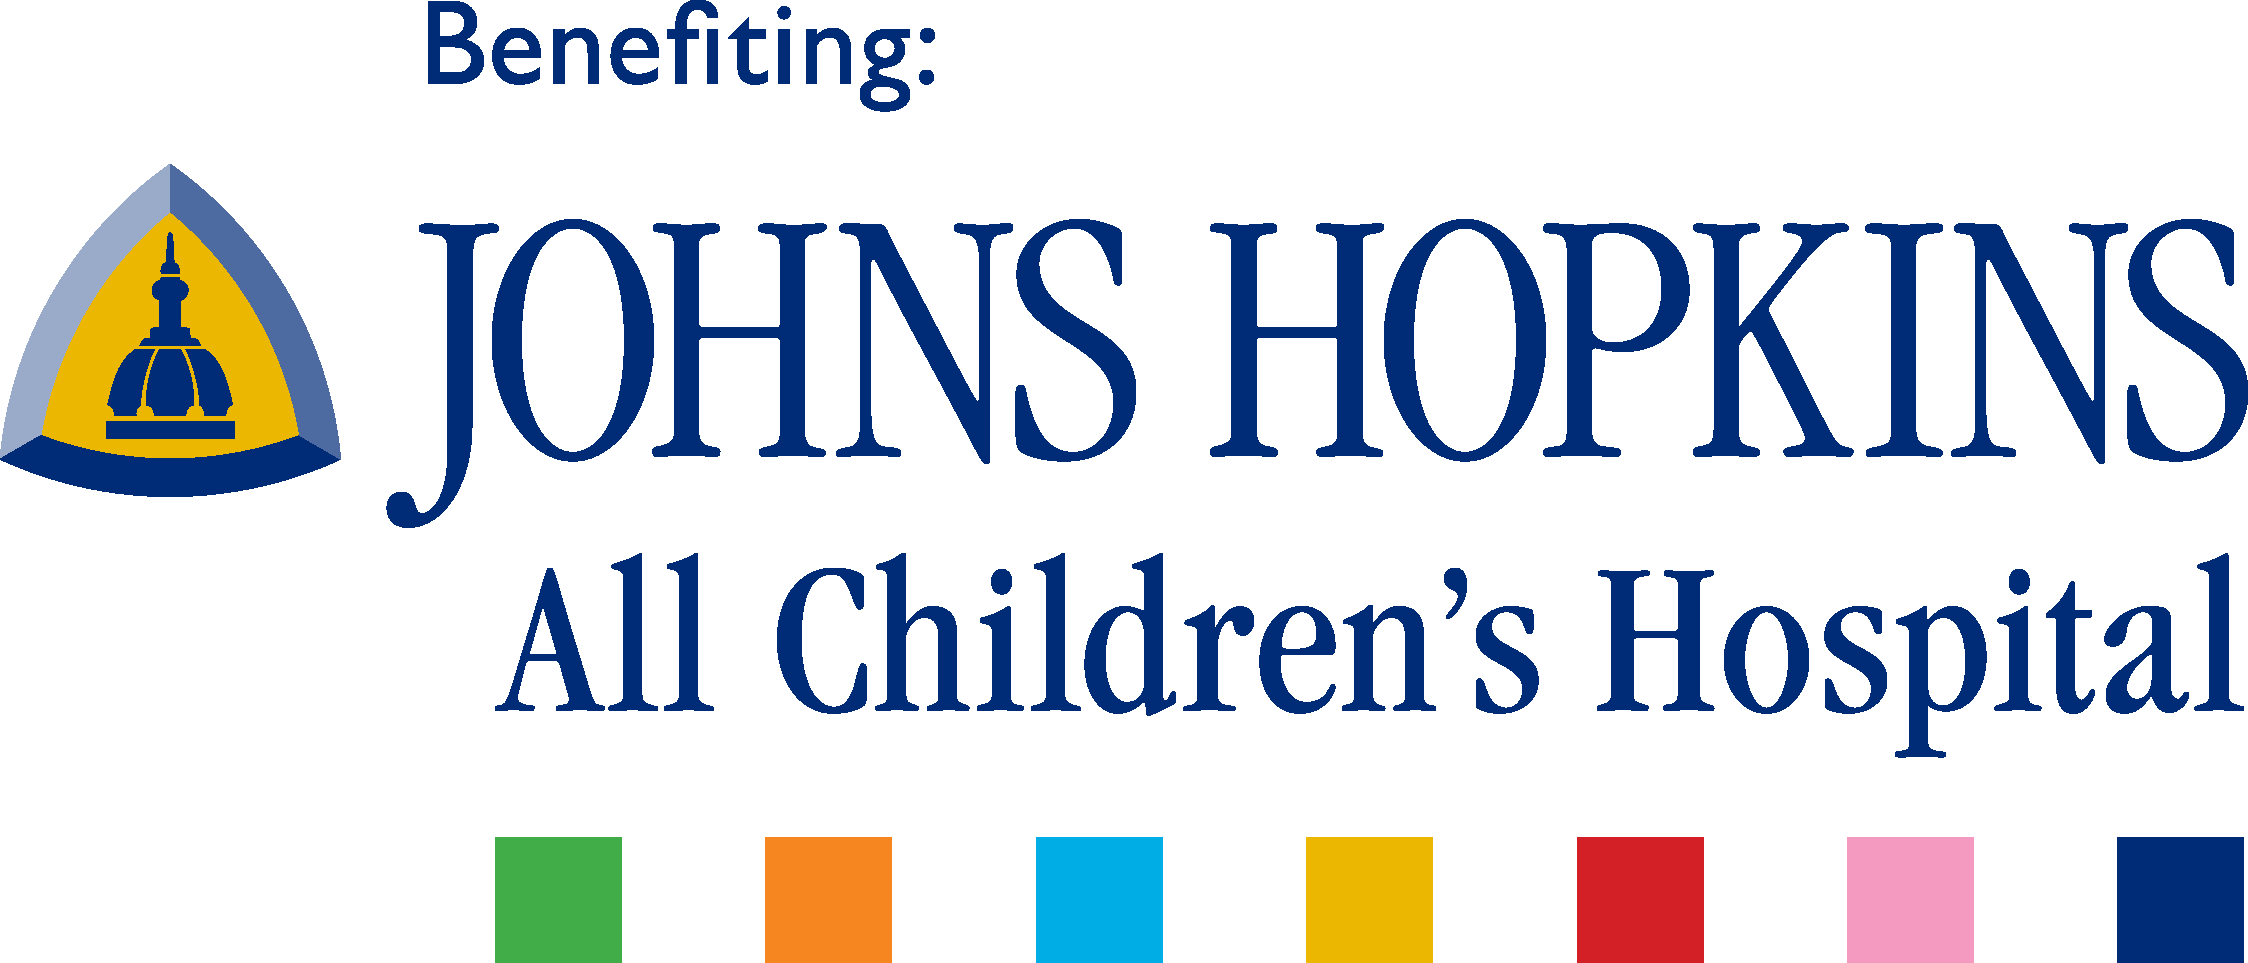 """Benefiting Johns Hopkins"" image"